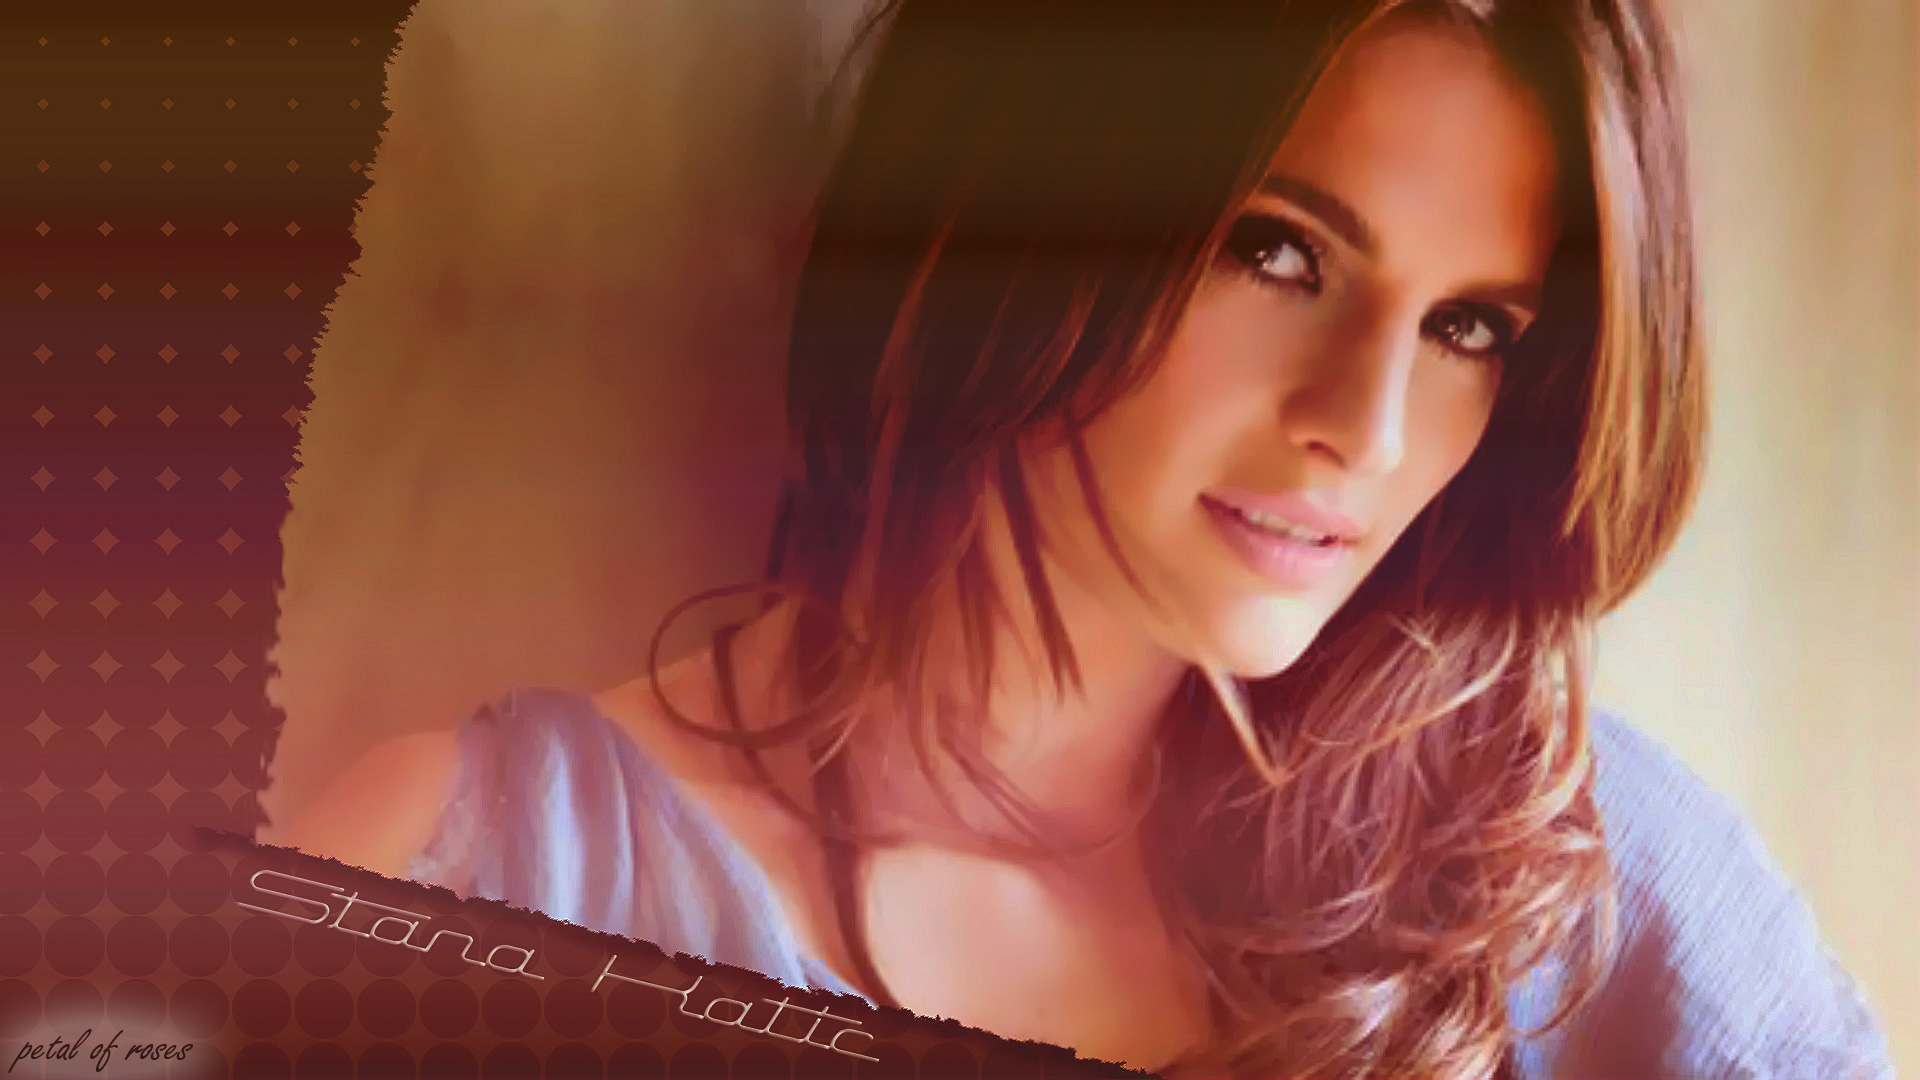 stana katic actress wallpaper - photo #10